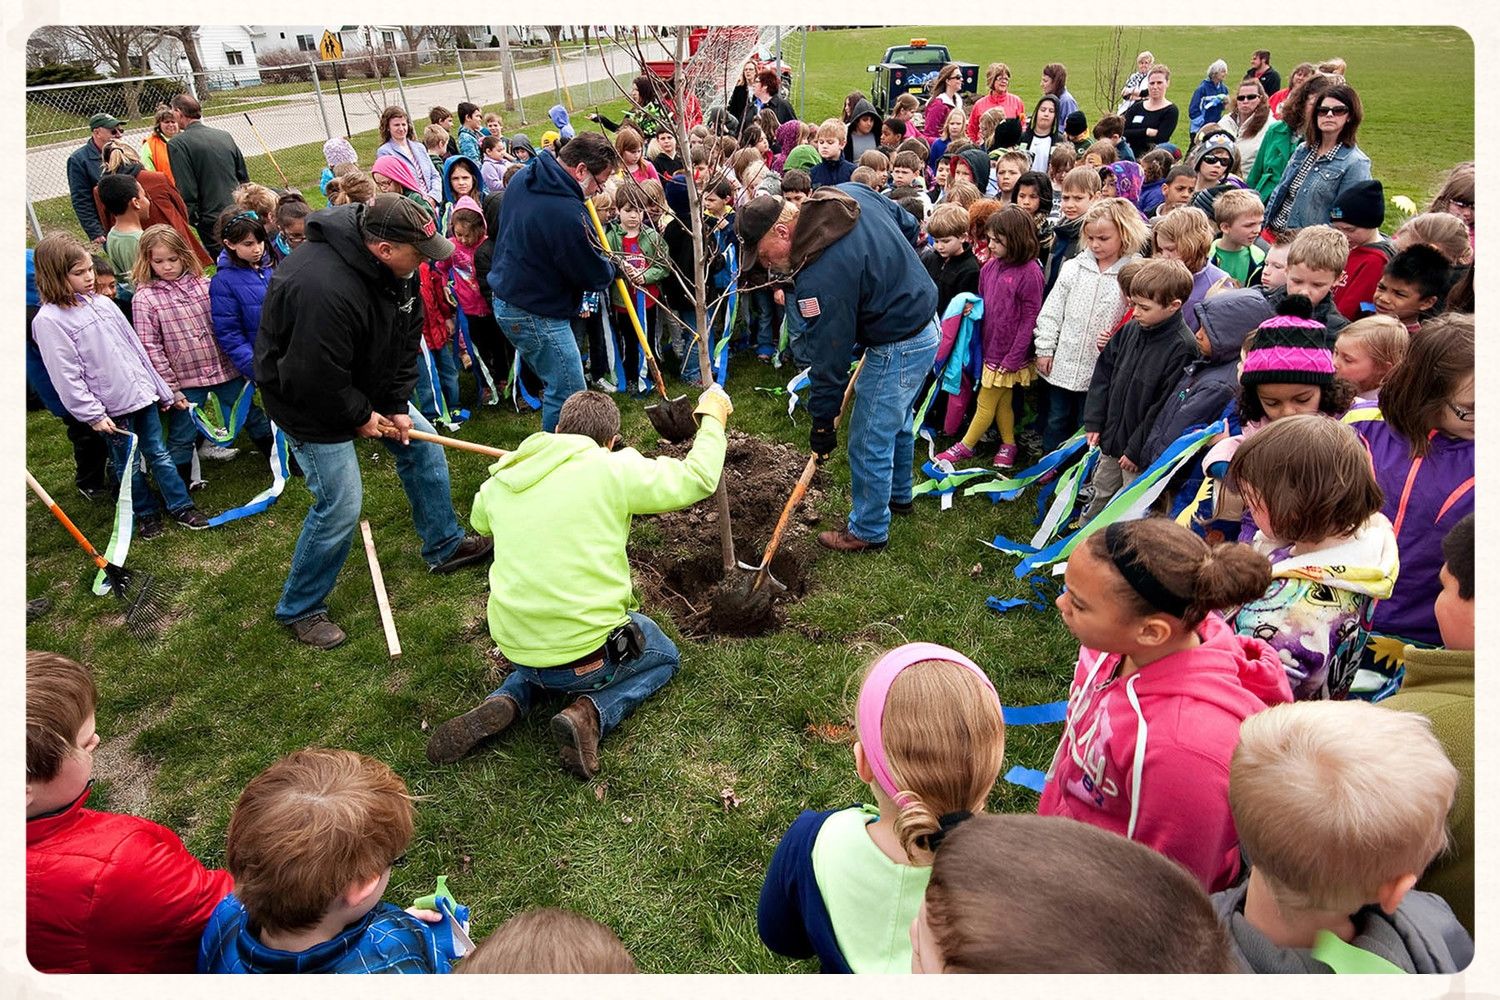 Planting trees with kids for Arbor day at Washington Elementary School.